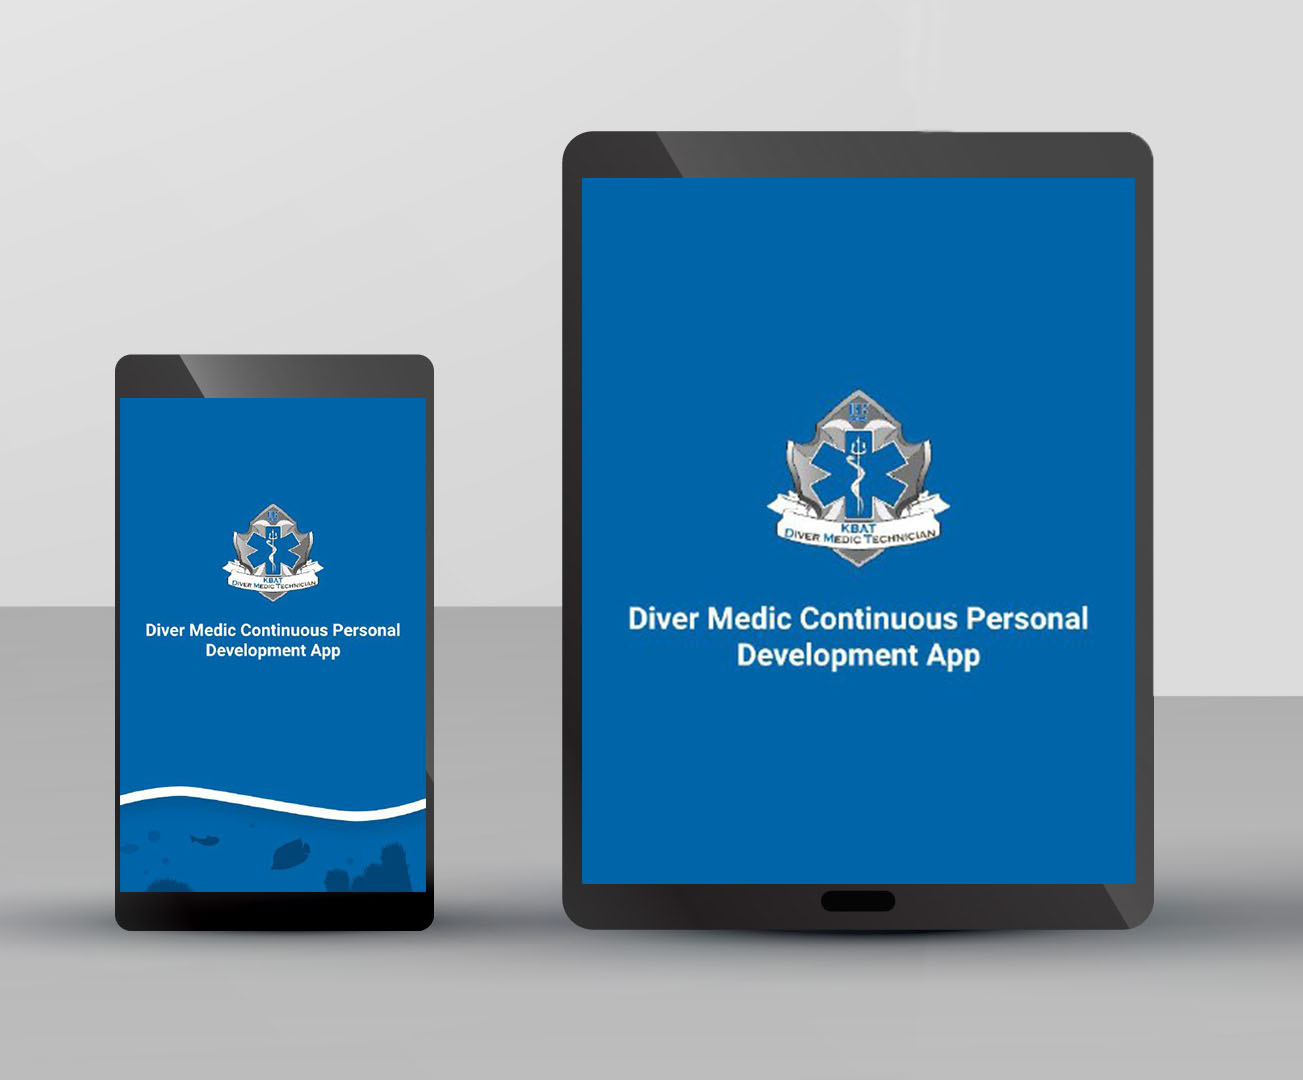 'KBAT Diver Medic' App is now available